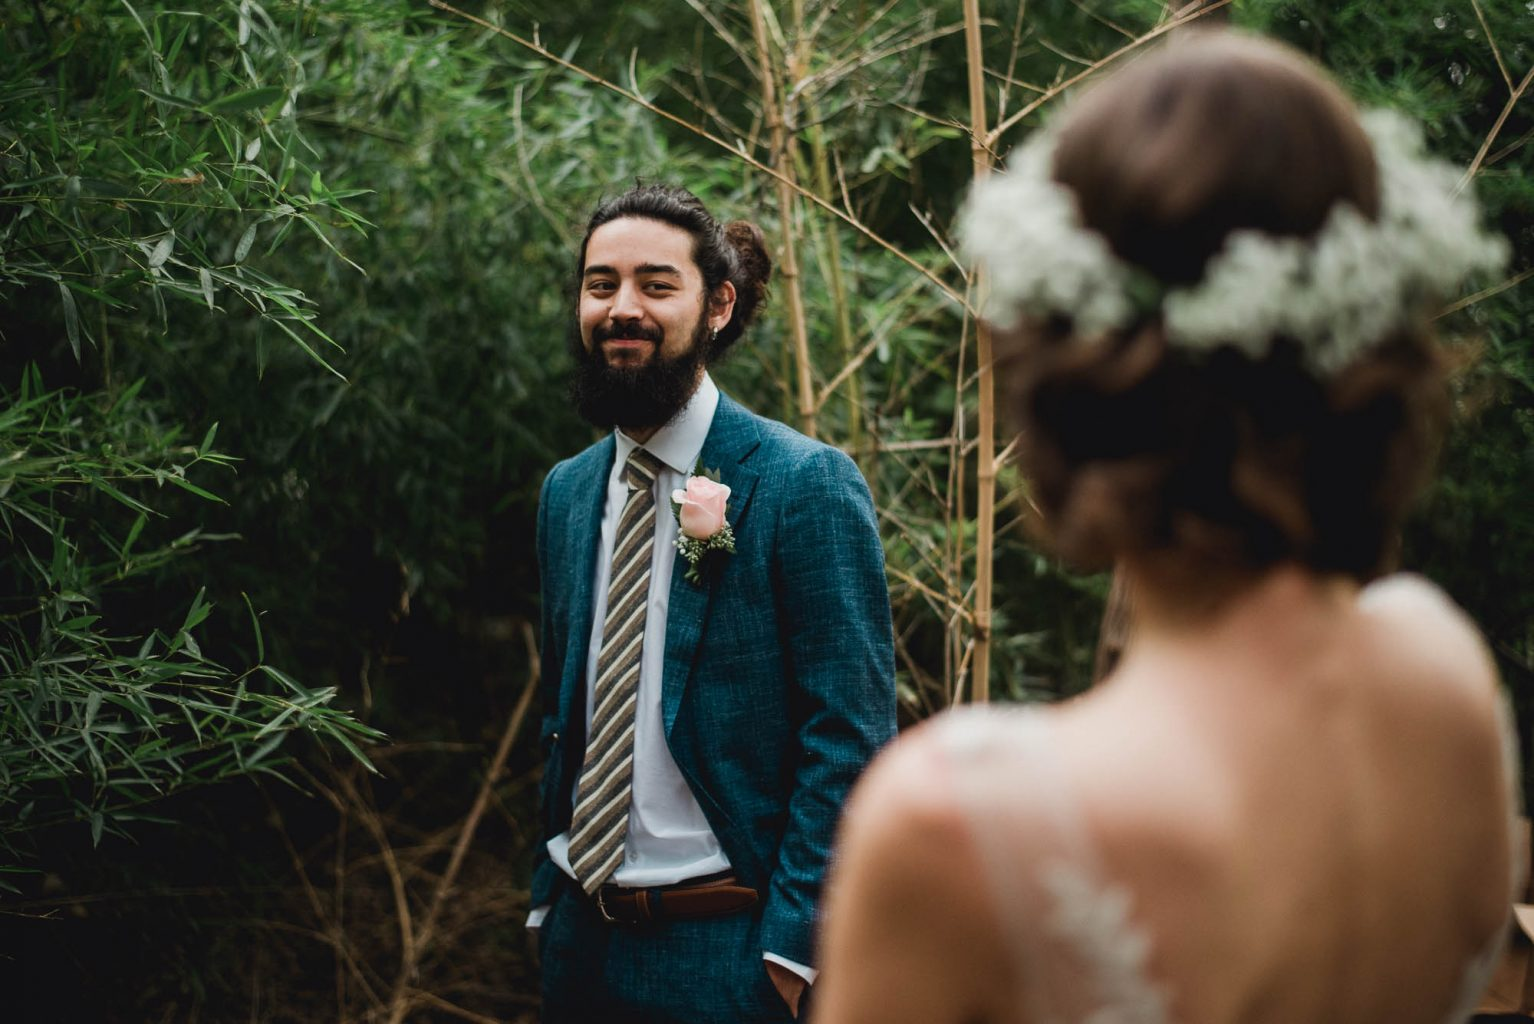 groom takes a glance at his bohemian bride at an Austin wedding